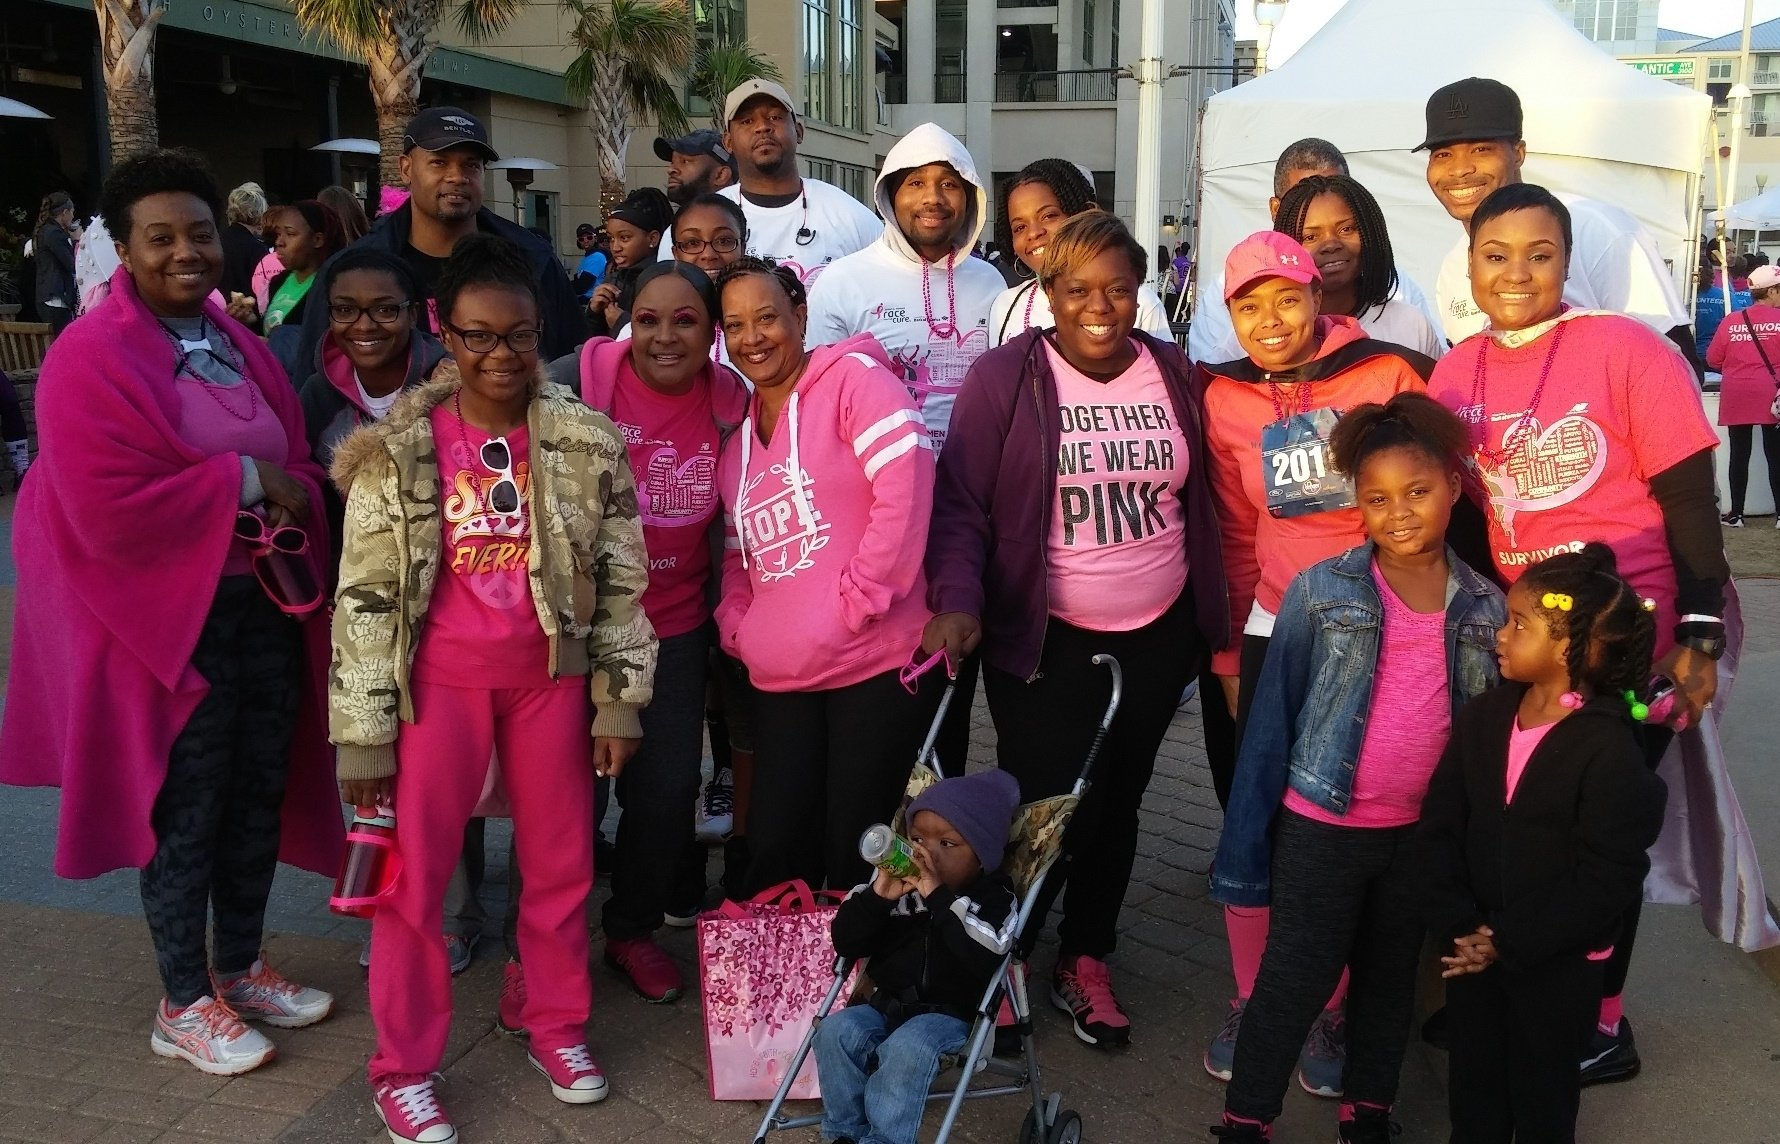 10 Amazing Race For The Cure Team Name Ideas susan g komen tidewater 2018 komen tidewater race for the cure 2020